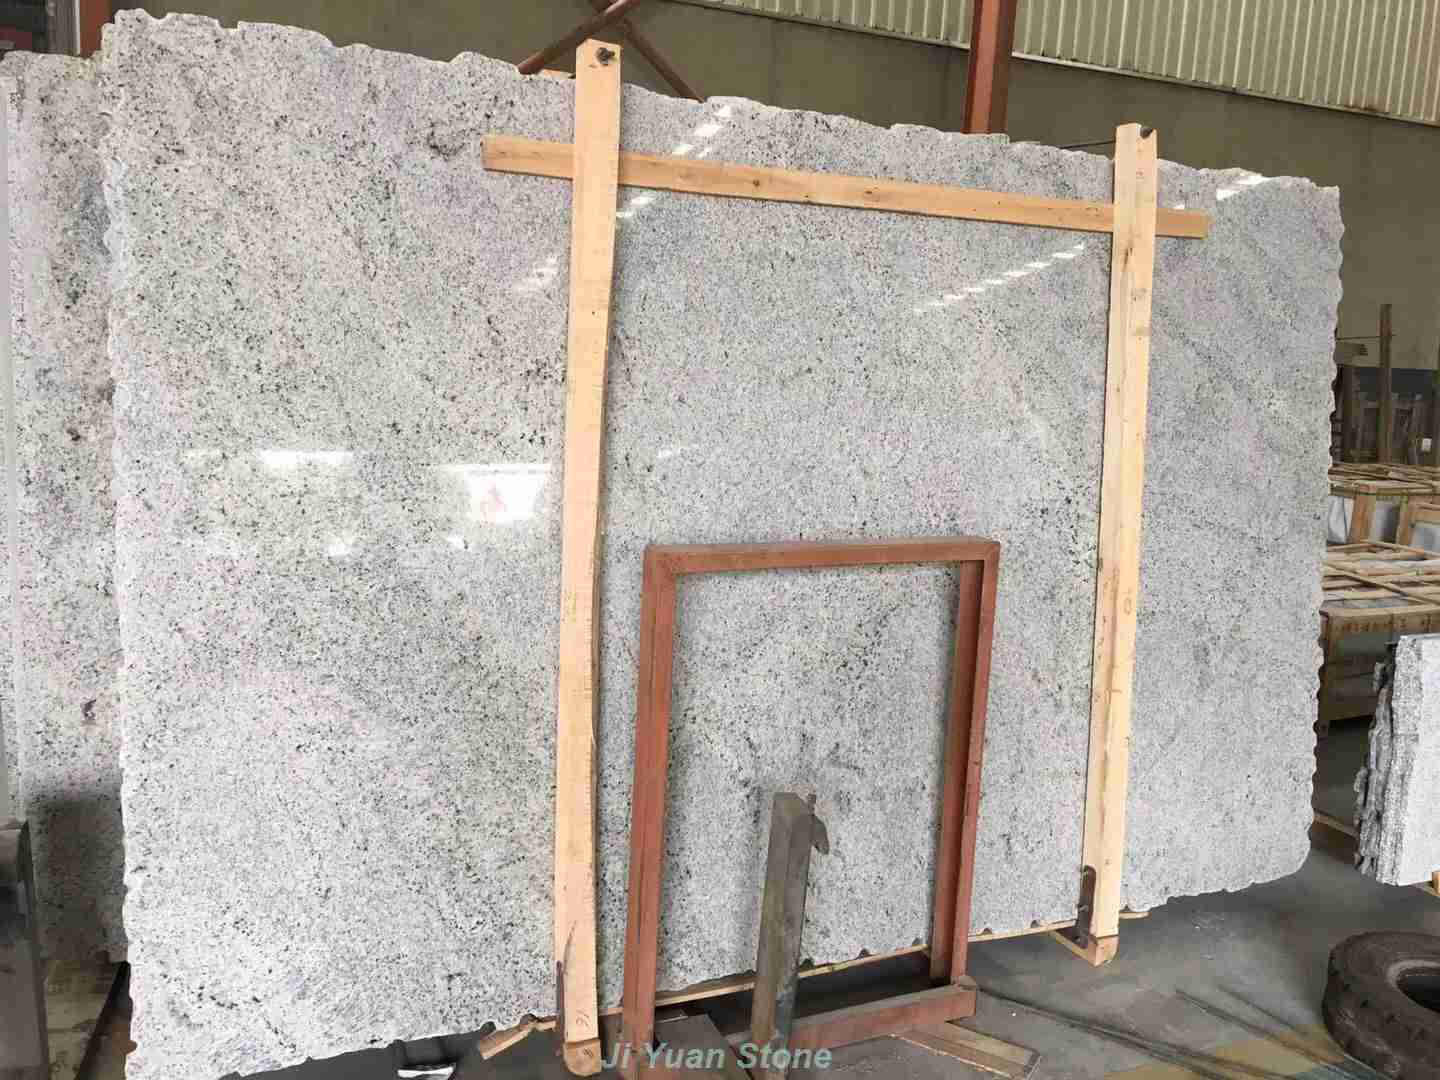 Cashmere white granite,kashmir granite,white and grey granite,white pearl granite,wholesale granite countertops,kashmir cream granite,affordable granite countertops